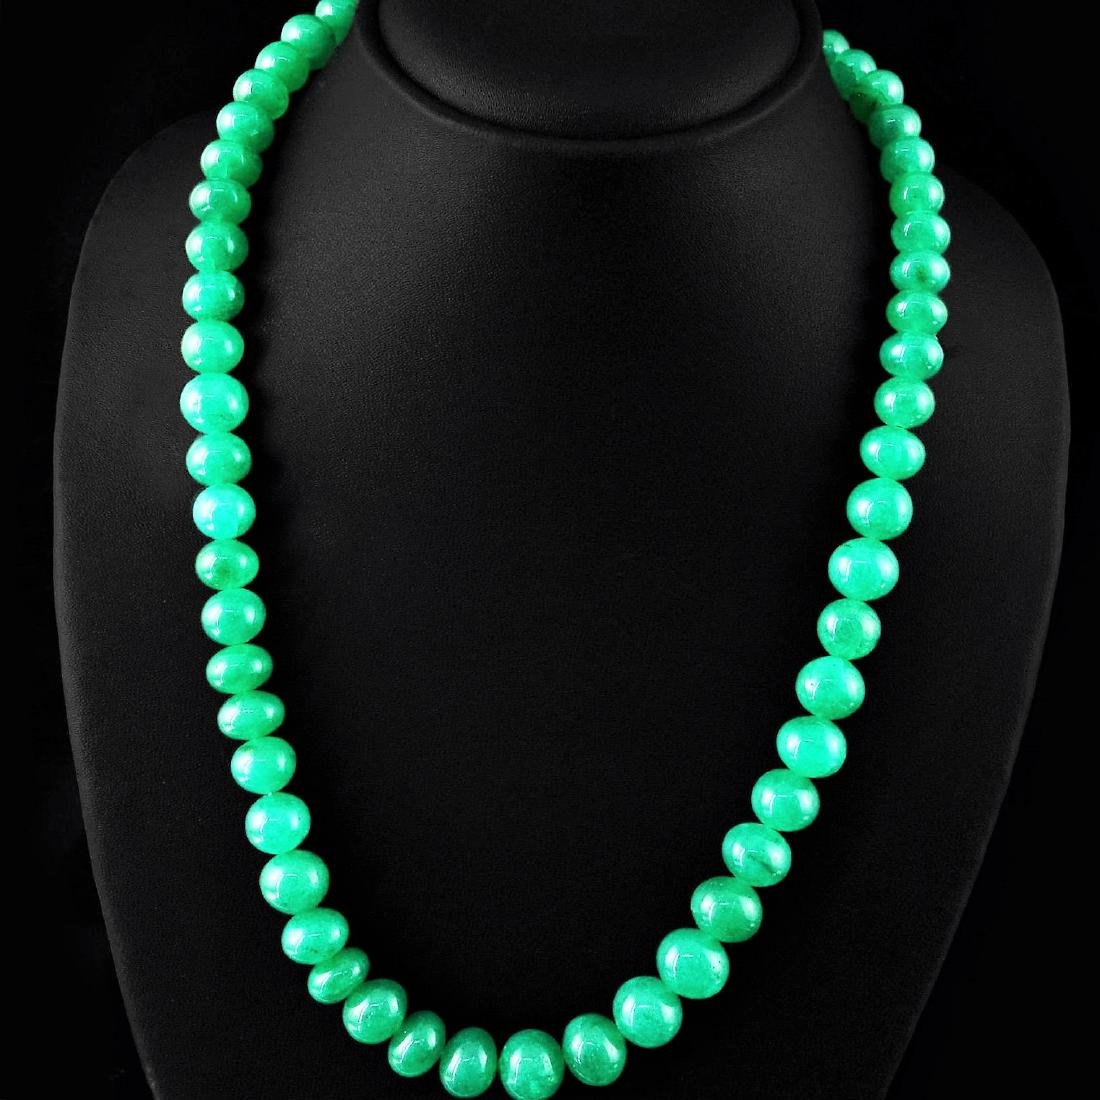 EARTH MINED RICH GREEN EMERALD ROUND BEADS NECKLACE